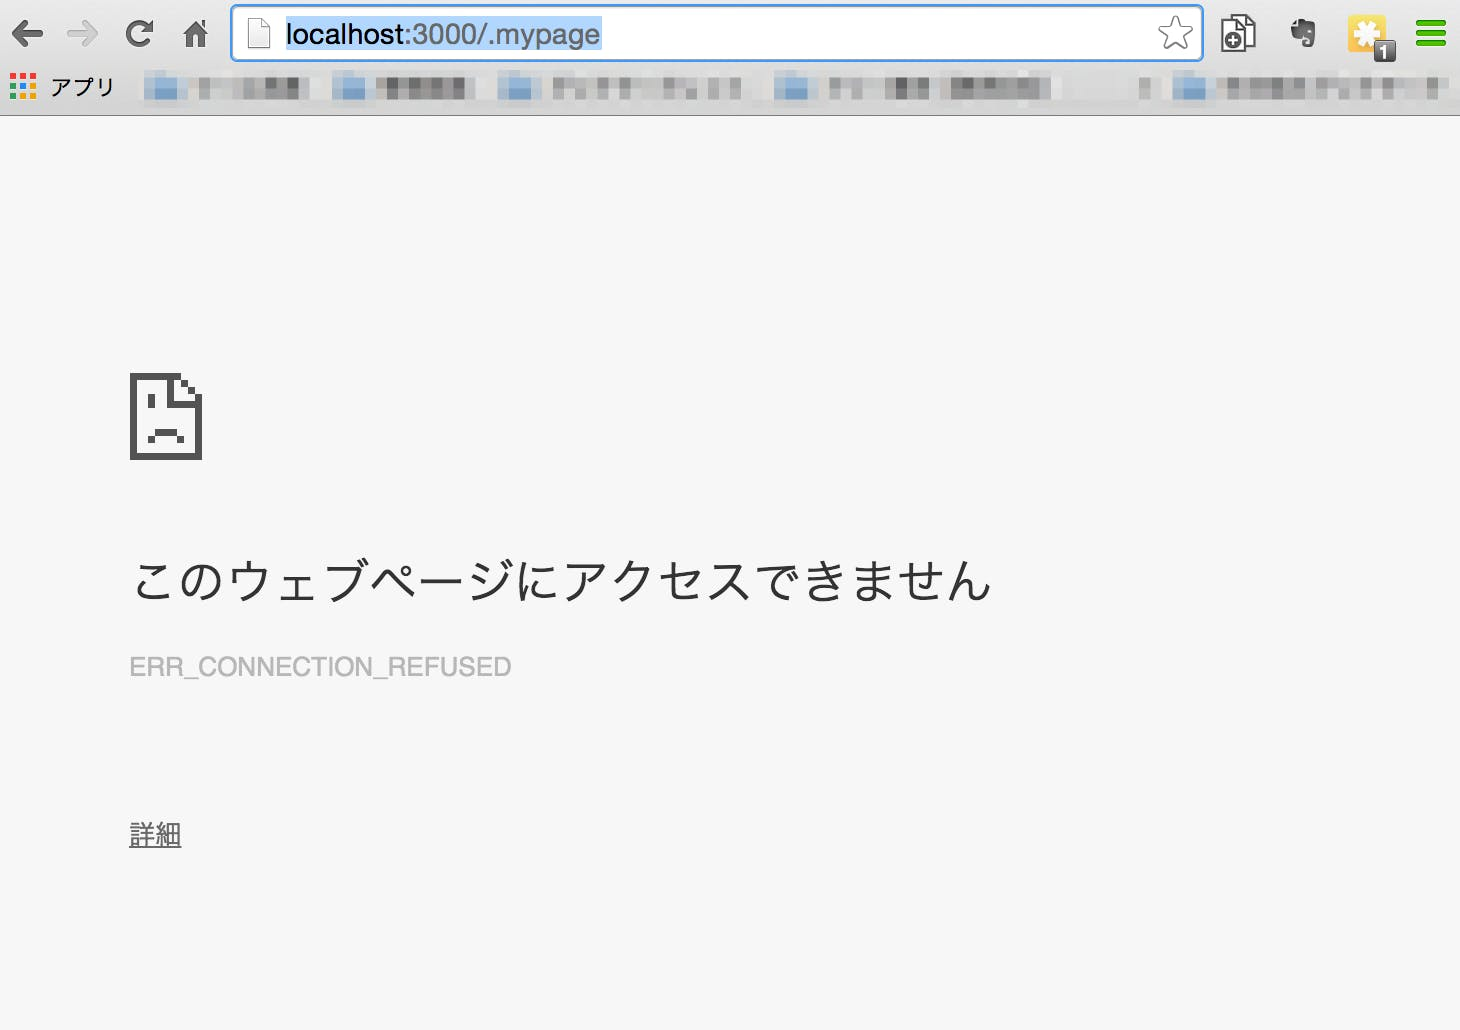 http___localhost_3000__mypage_に接続できません.png